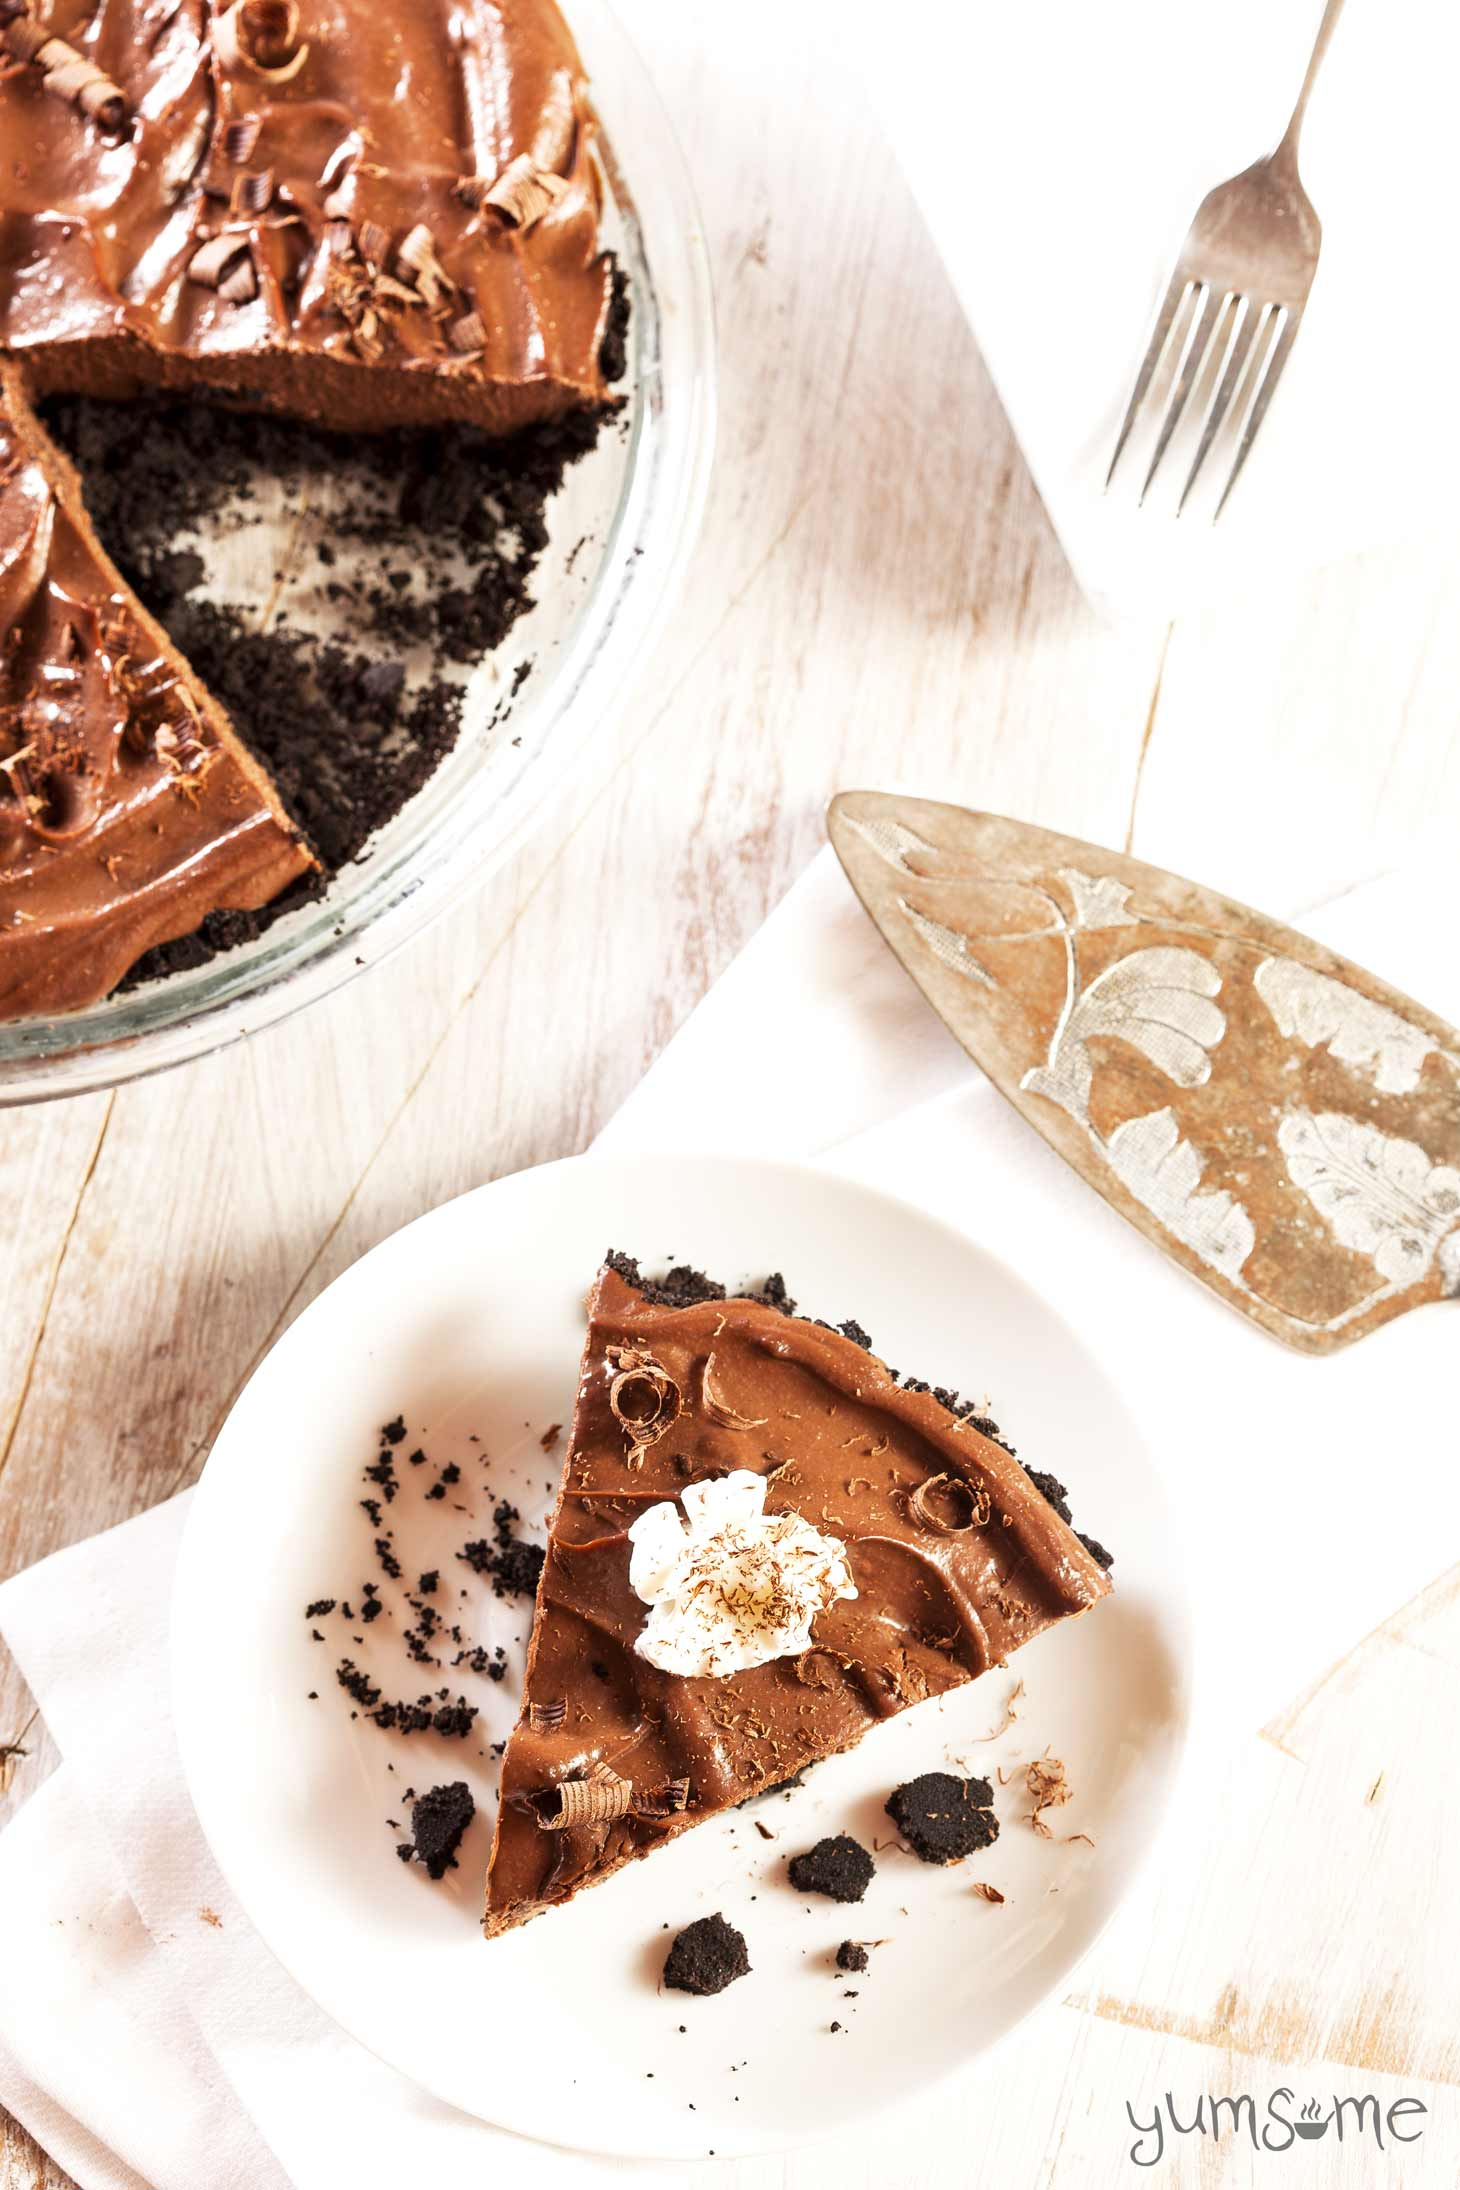 My decadent raw vegan chocolate tart is a great alternative to traditional Christmas pudding. It's gluten- and soy-free too, and contains no refined sugar. | yumsome.com